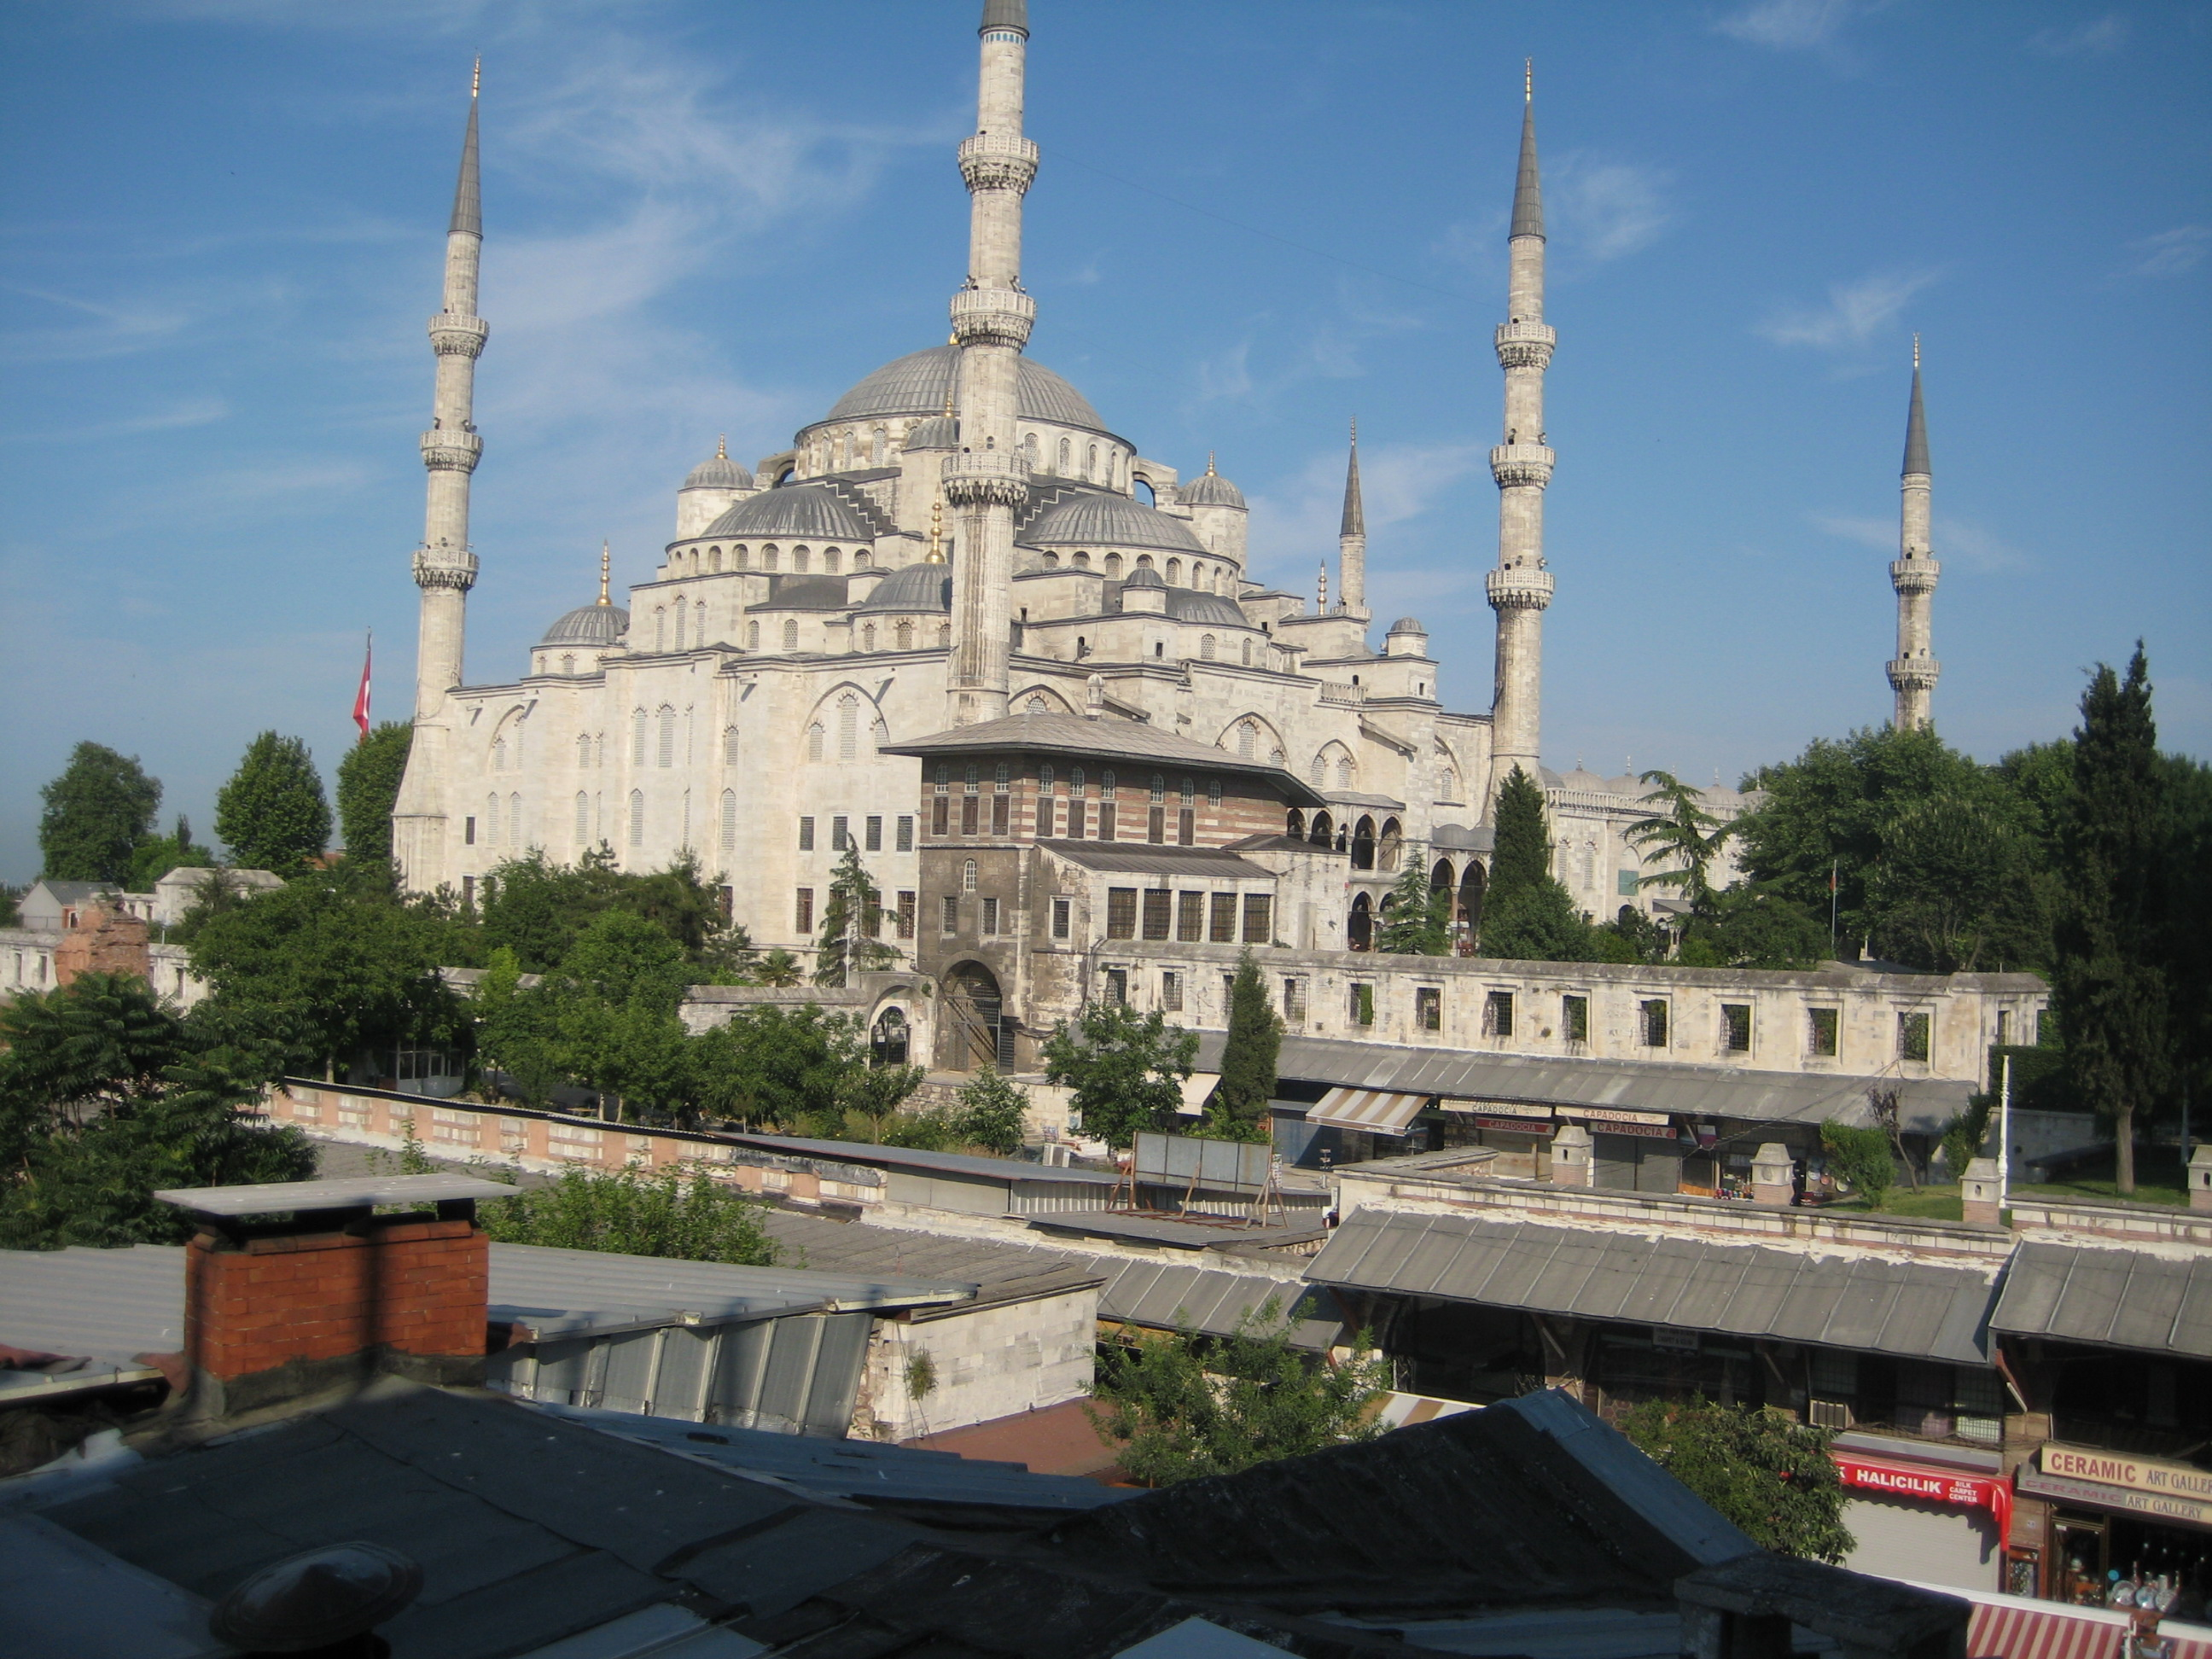 The Blue Mosque is less than 1 block away.